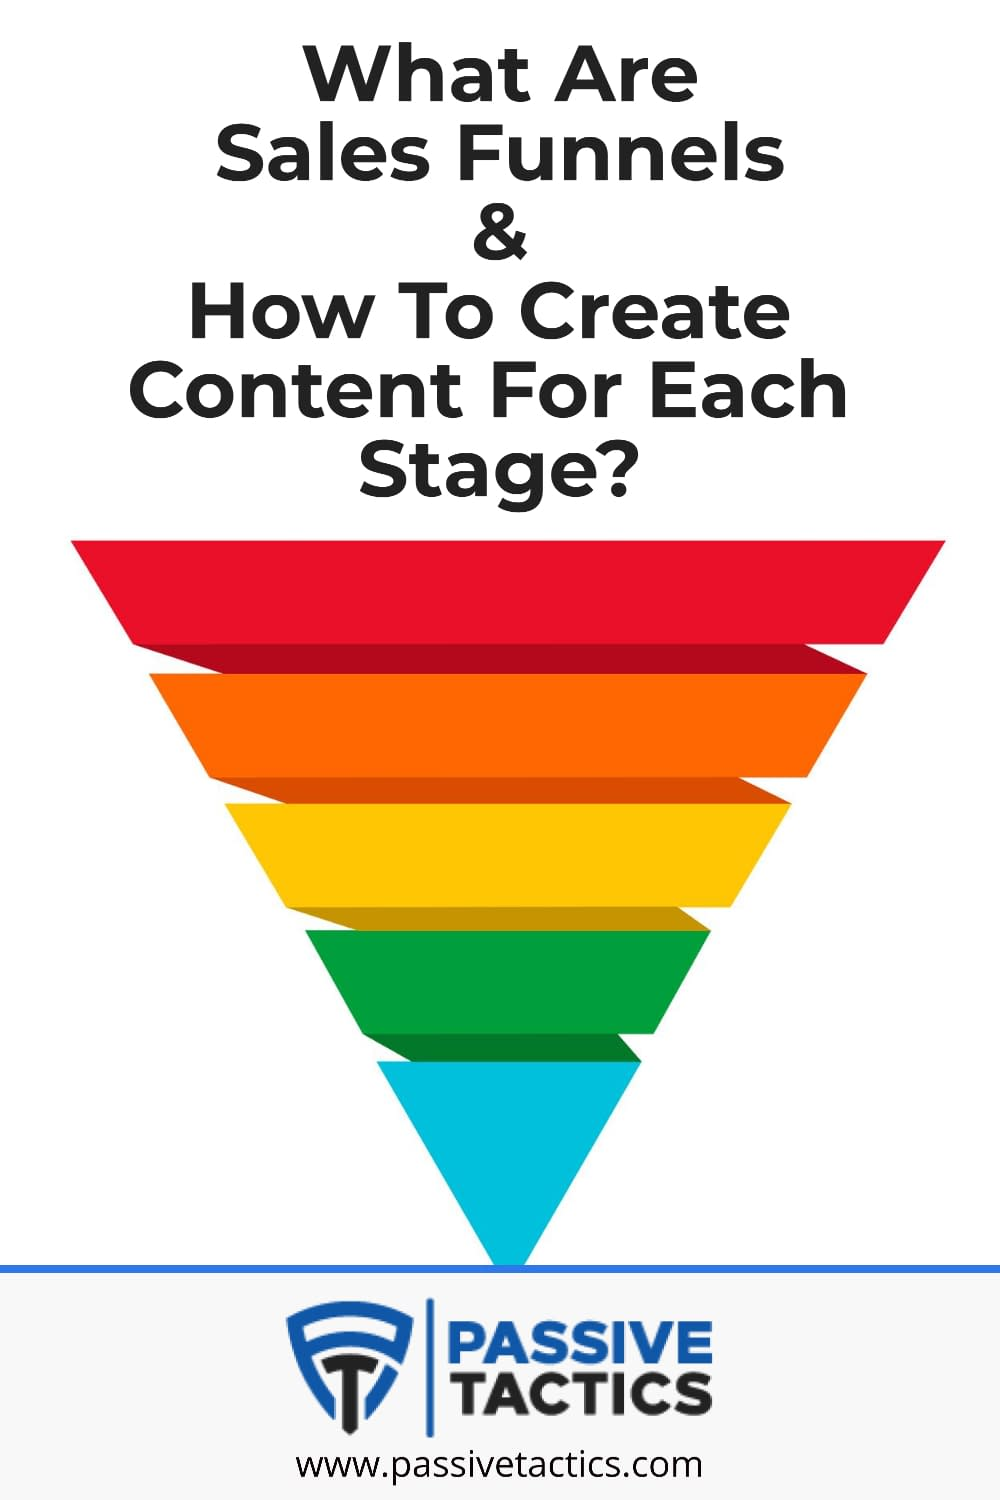 What Are Sales Funnels & How To Create Content For Each Stage?